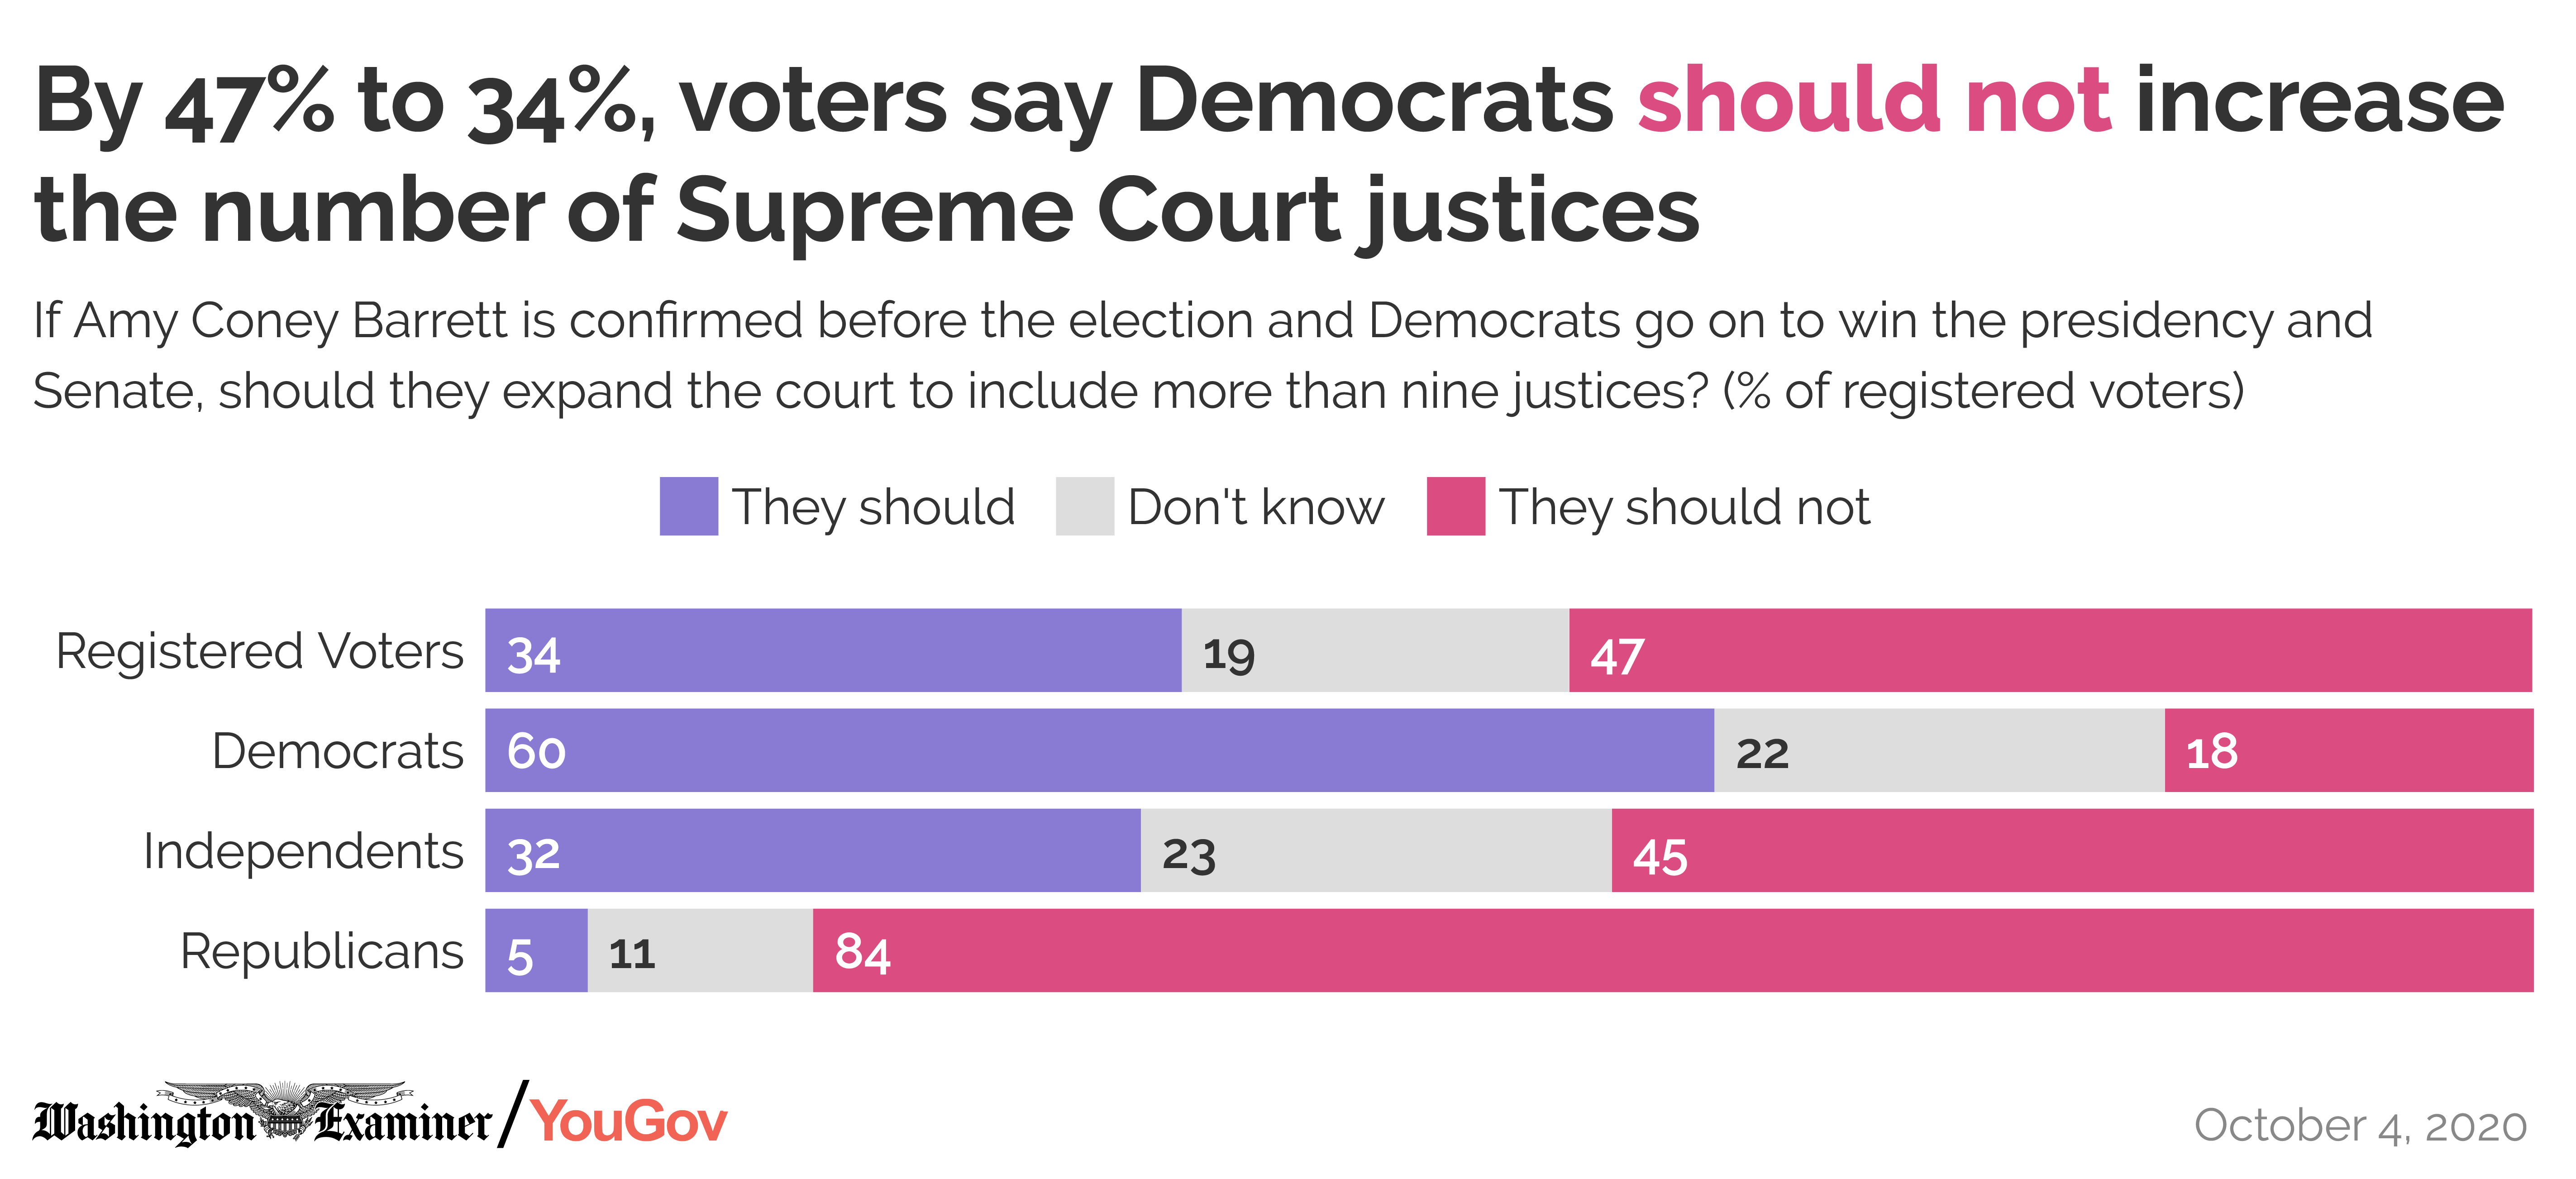 By 47% to 34%, voters say Democrats should not increase  the number of Supreme Court justices